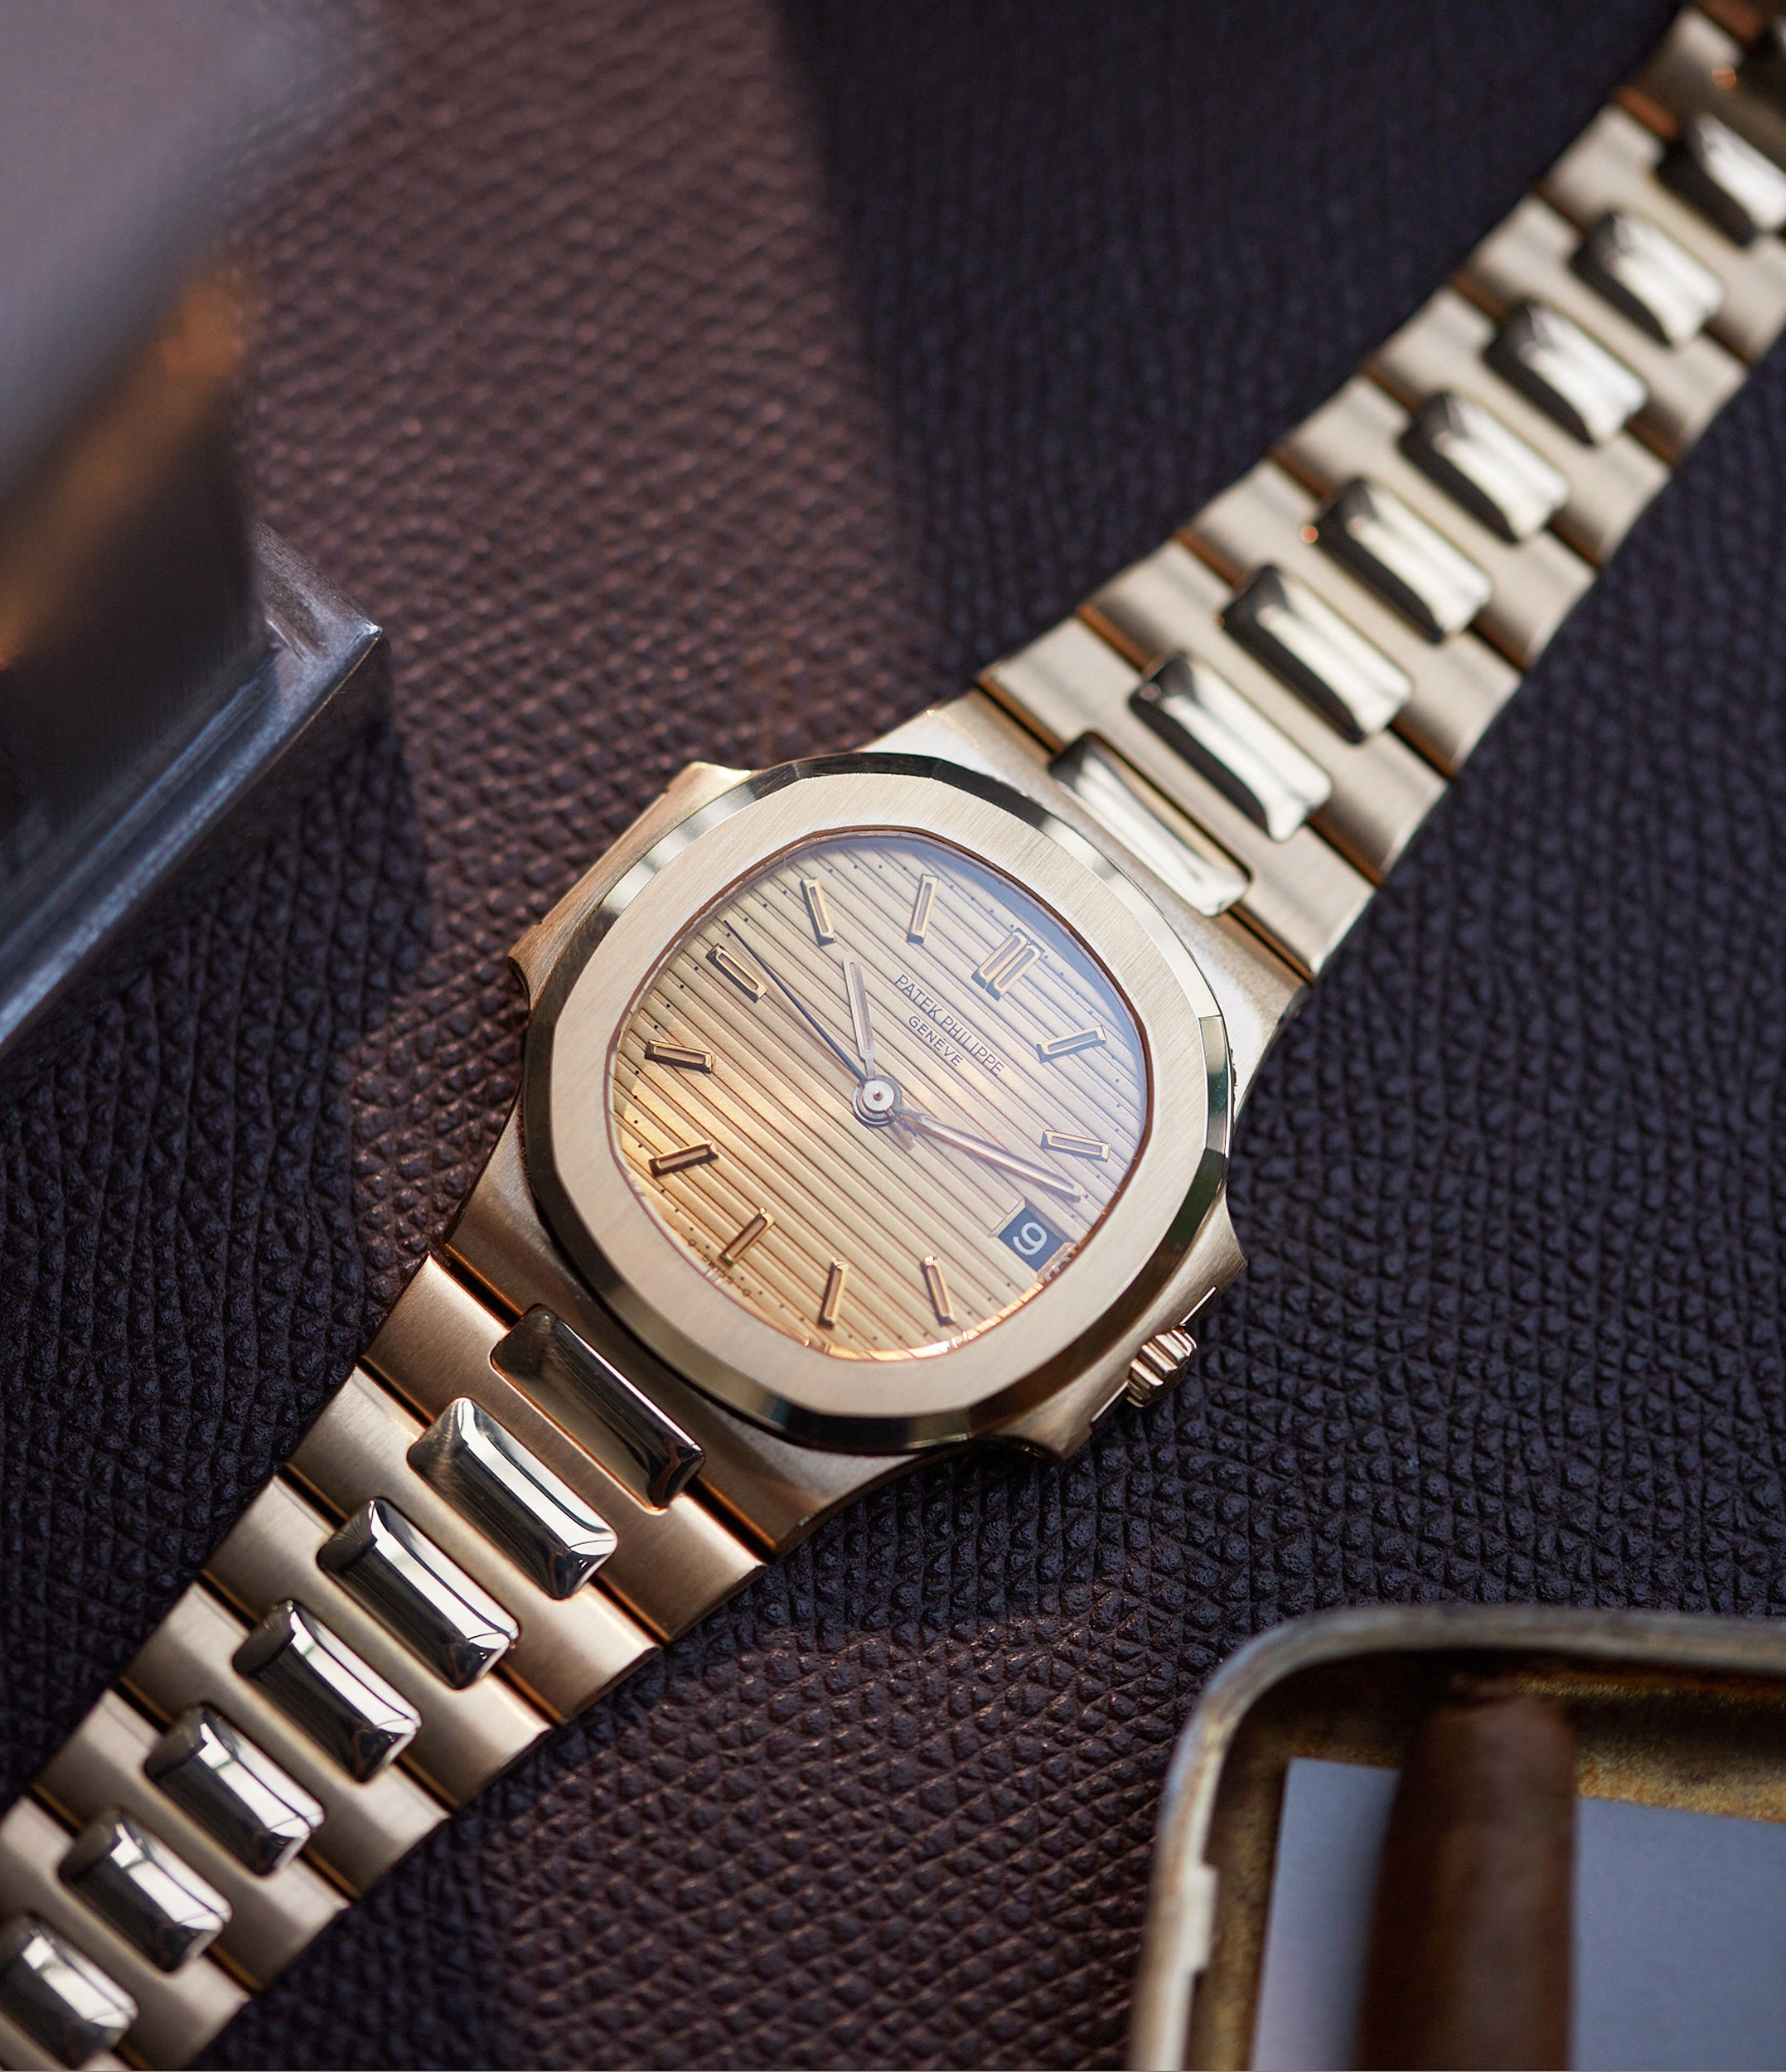 for sale Patek Philippe Nautilus Ref. 3800-001J yellow gold dark date disc luxury sports watch for sale online A Collected Man London UK specialist rare watches